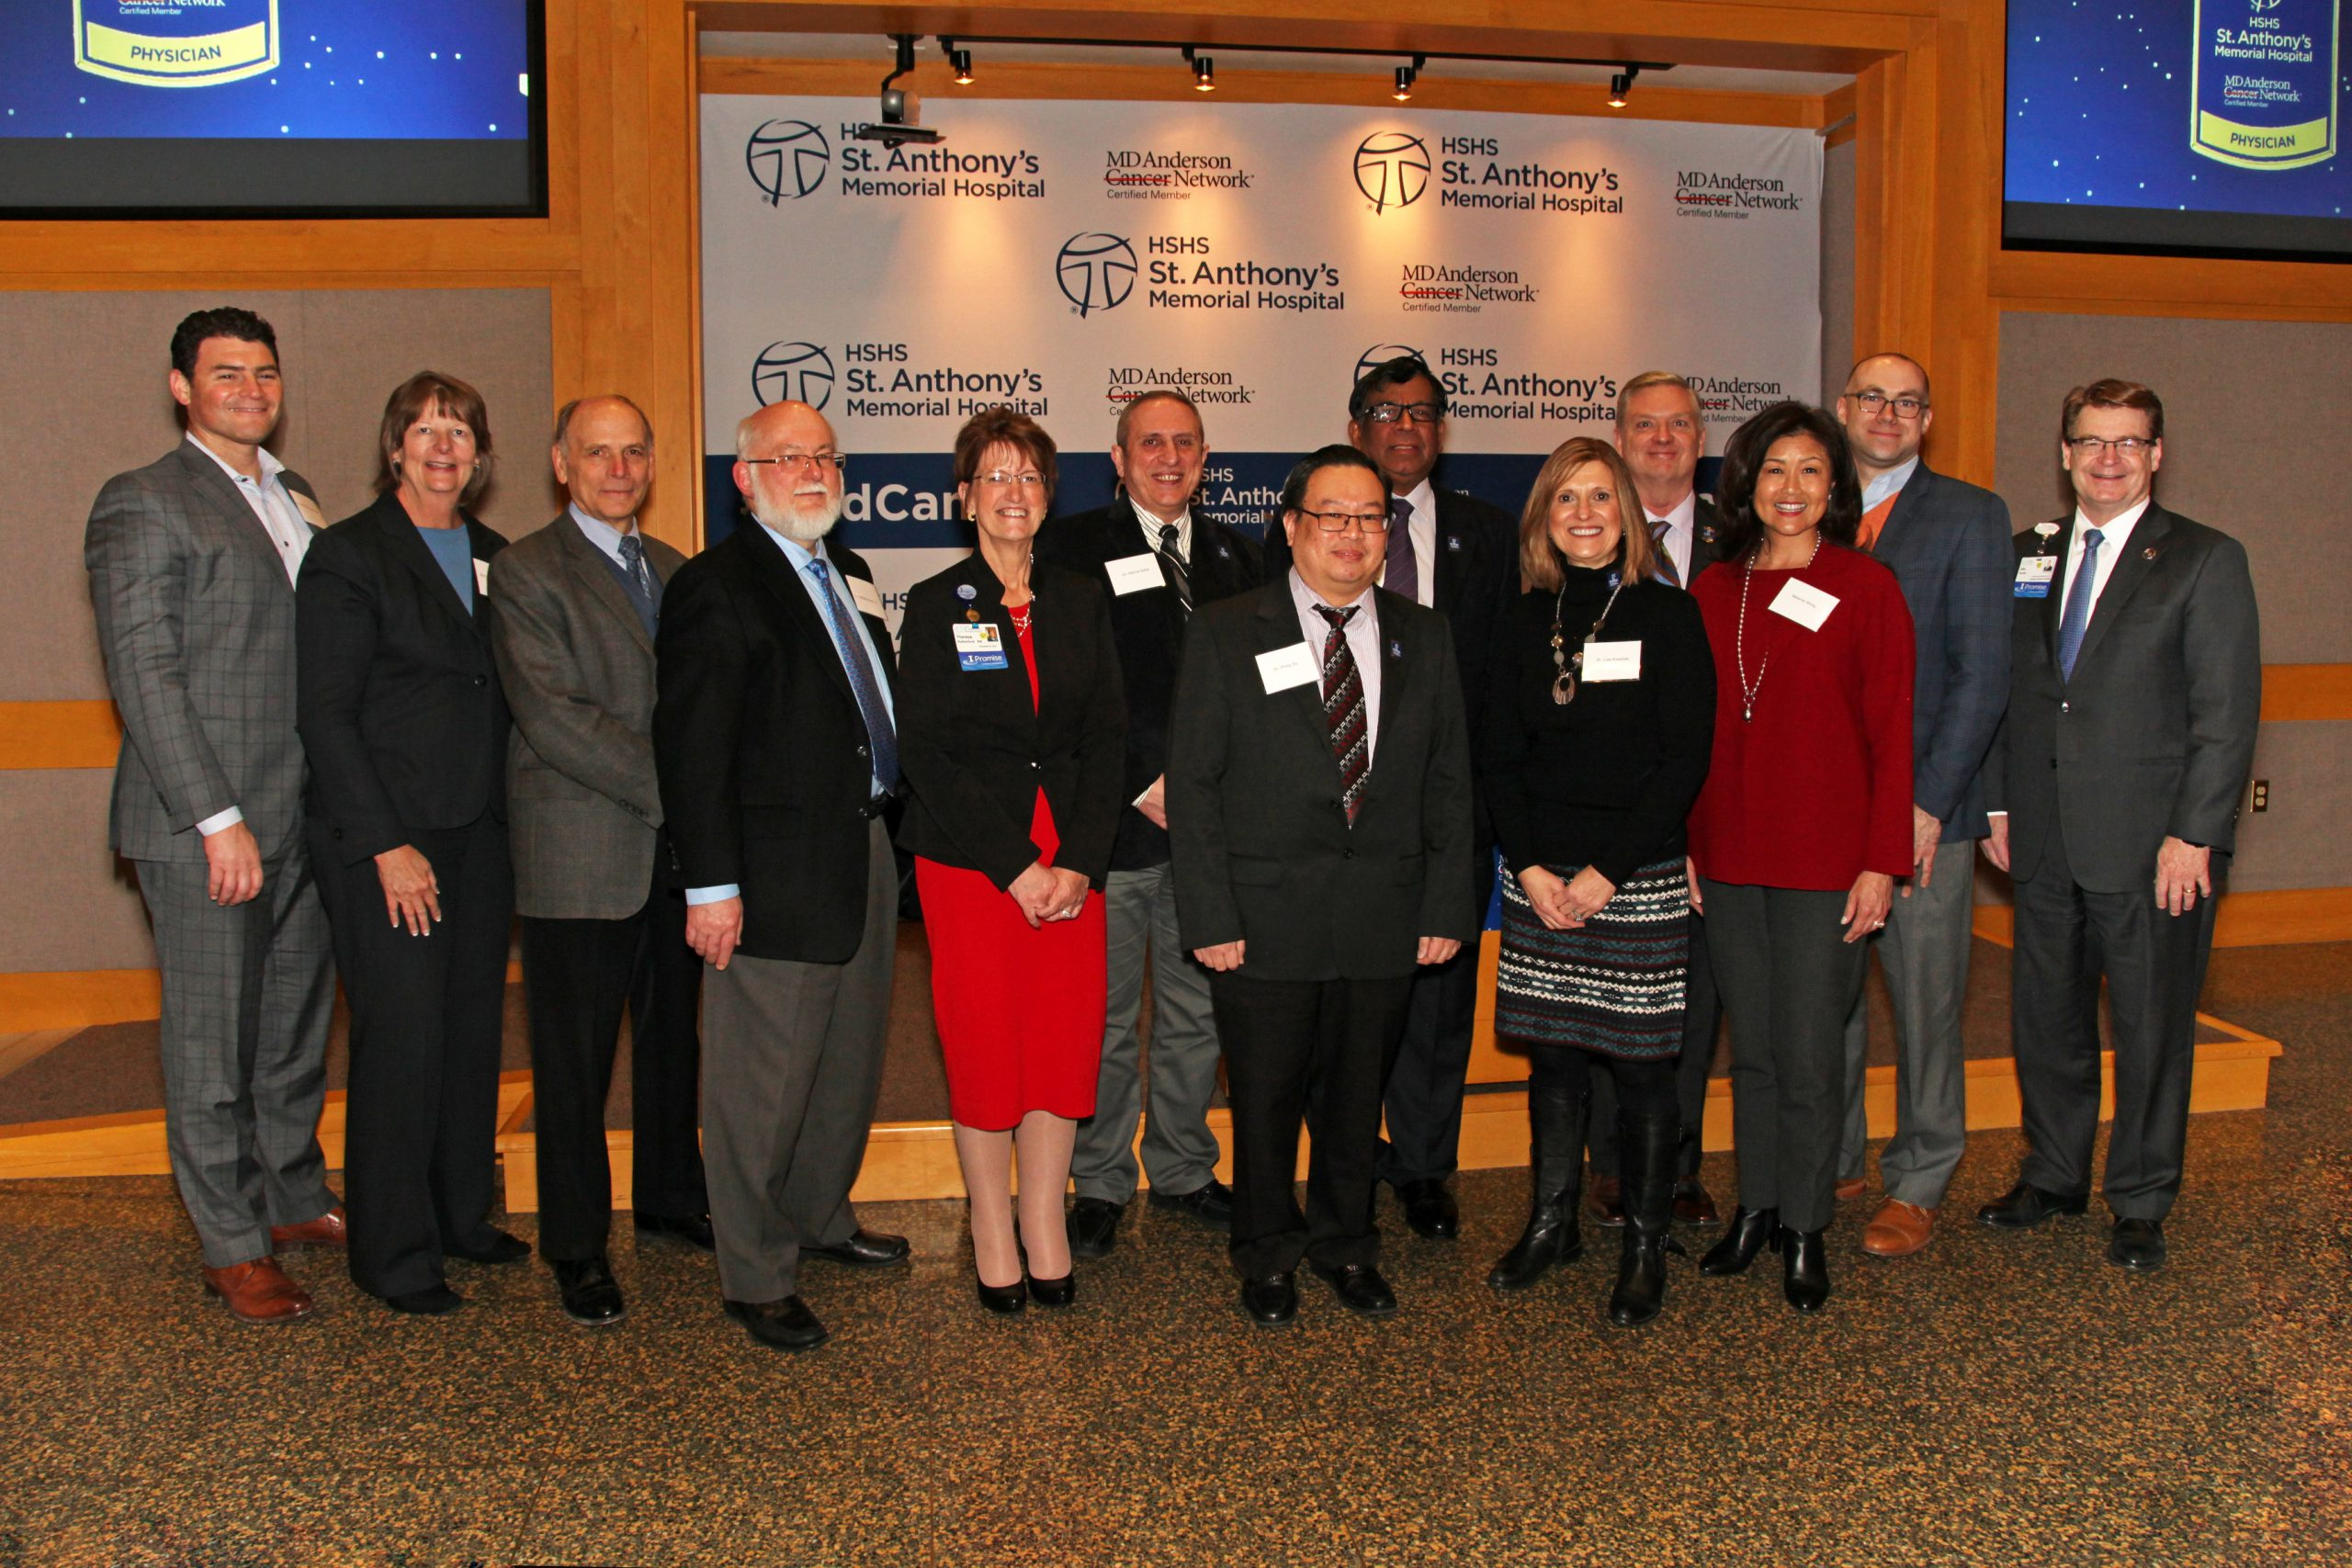 HSHS St. Anthony's Memorial Hospital becomes Certified Member of MD Anderson Cancer Network®